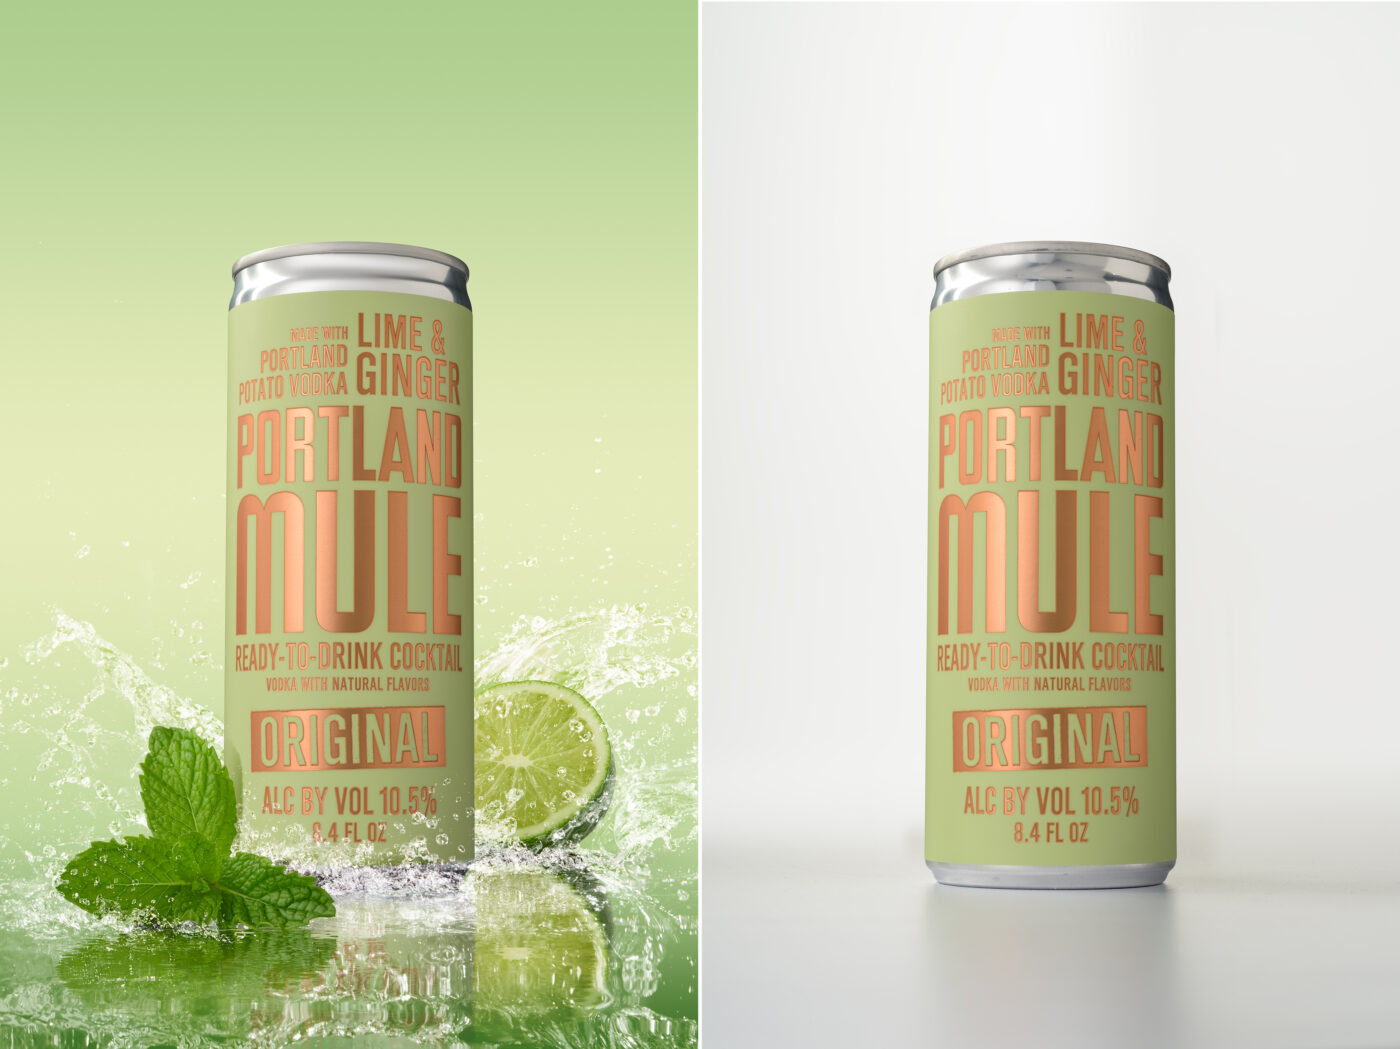 After and Before - Portland Mule